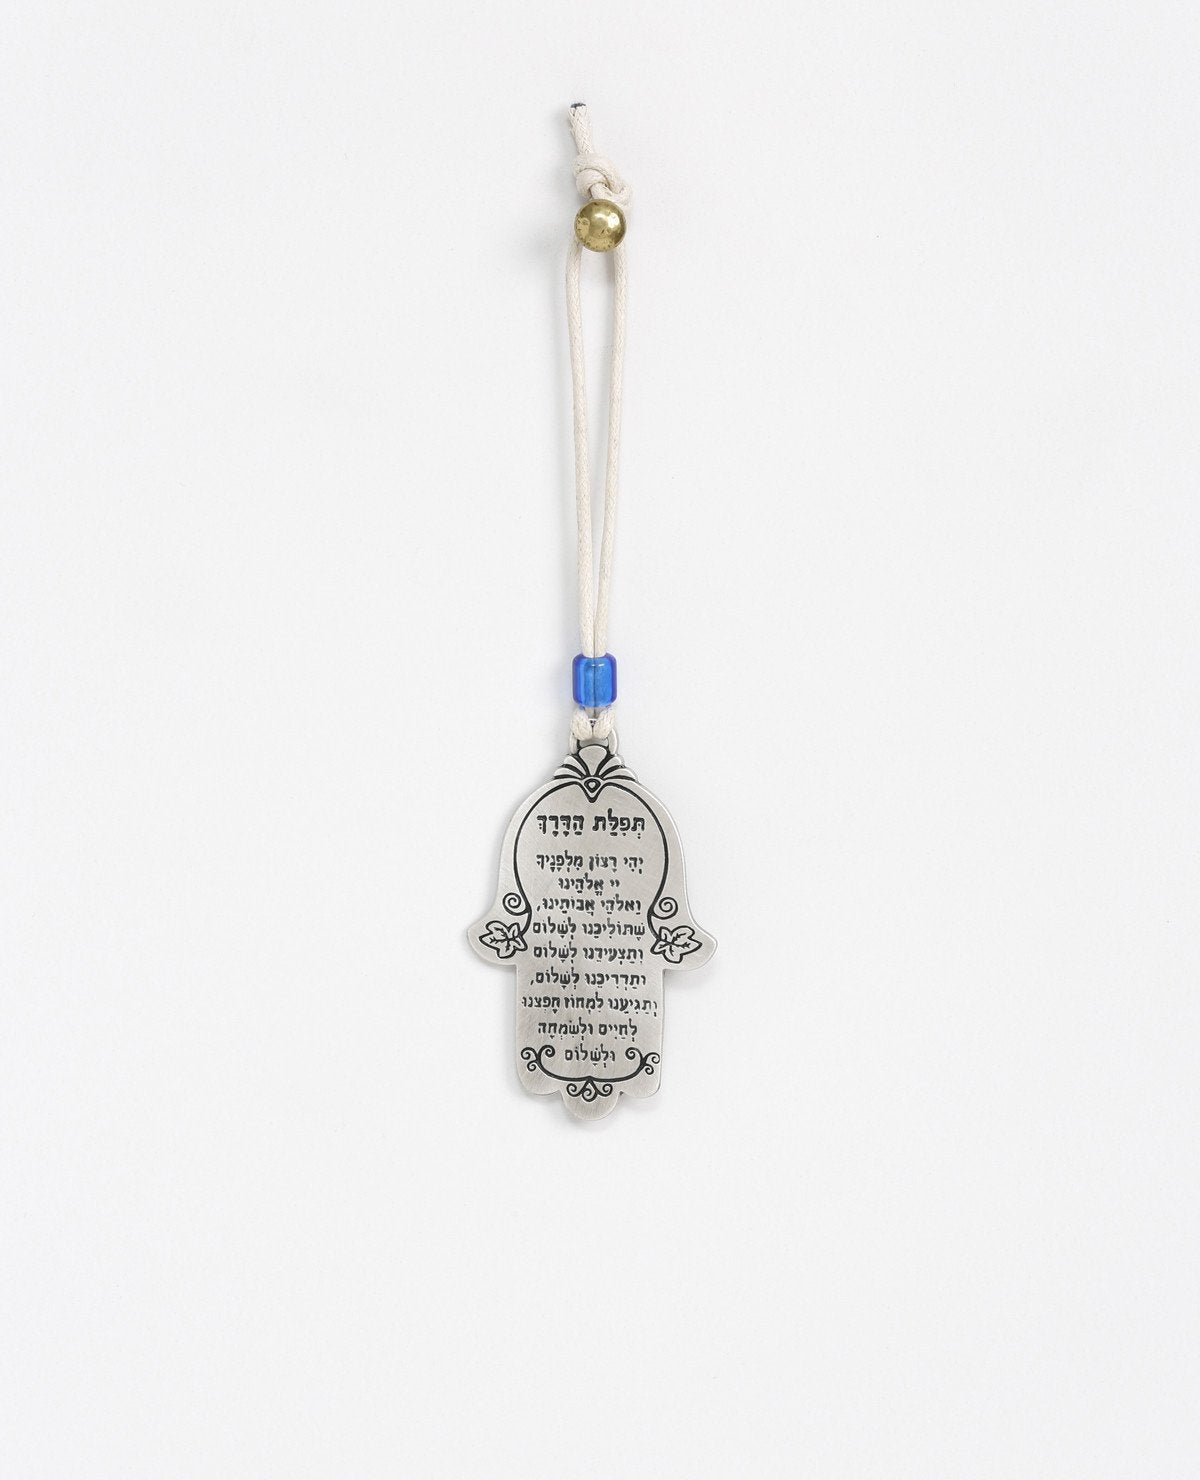 Sterling silver plated car pendant with a blue bead.  Length: 7 cm  Width: 4 cm